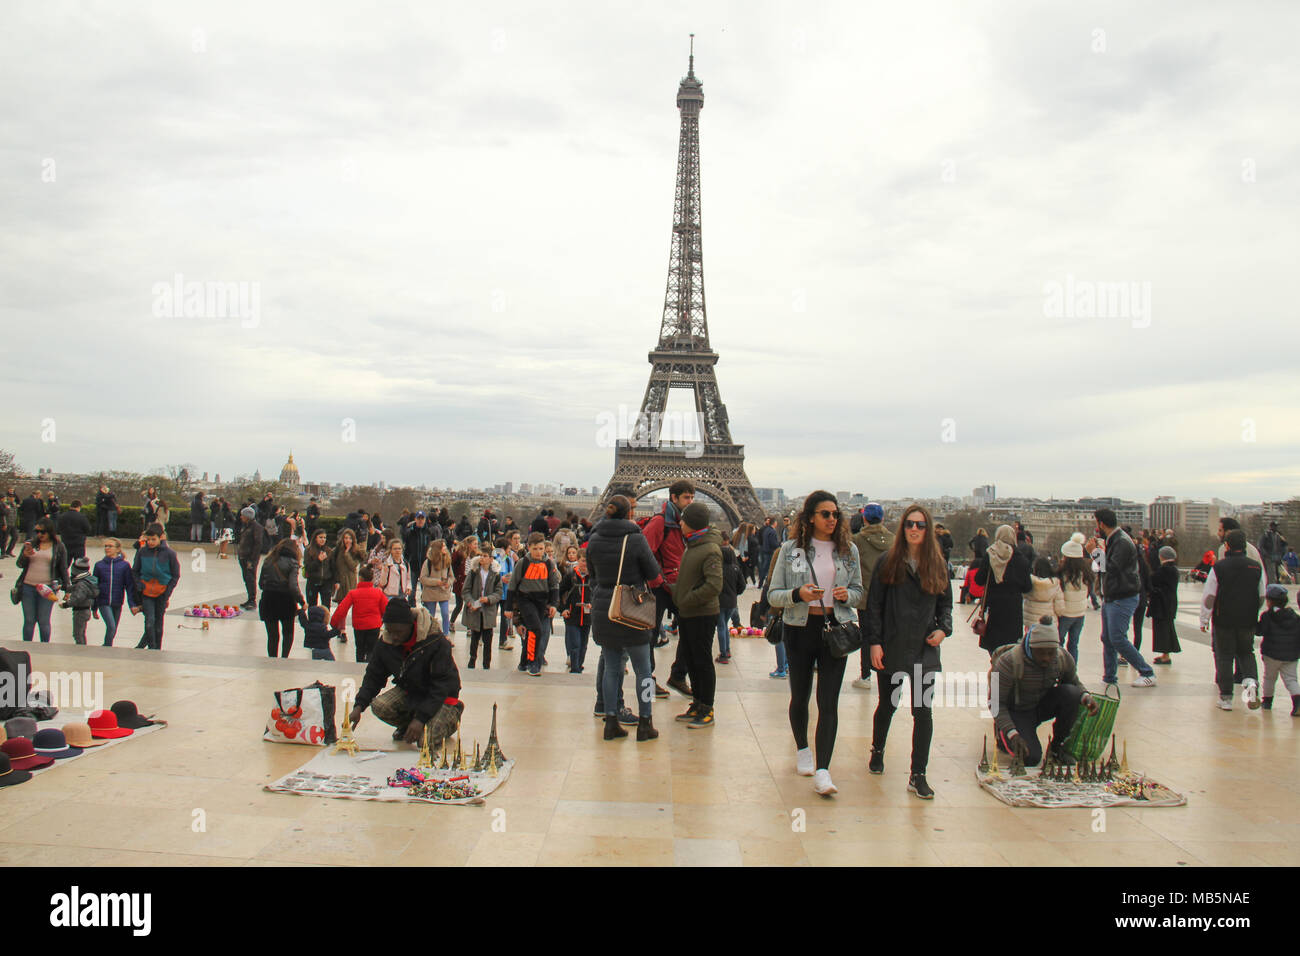 Paris, France -  02 April 2018. Tourists are seen Palais de Chaillot , Trocadero on 01 April with the Eiffel Tower seen on the background. General view of Paris, France. @ David Mbiyu/Alamy Live News - Stock Image